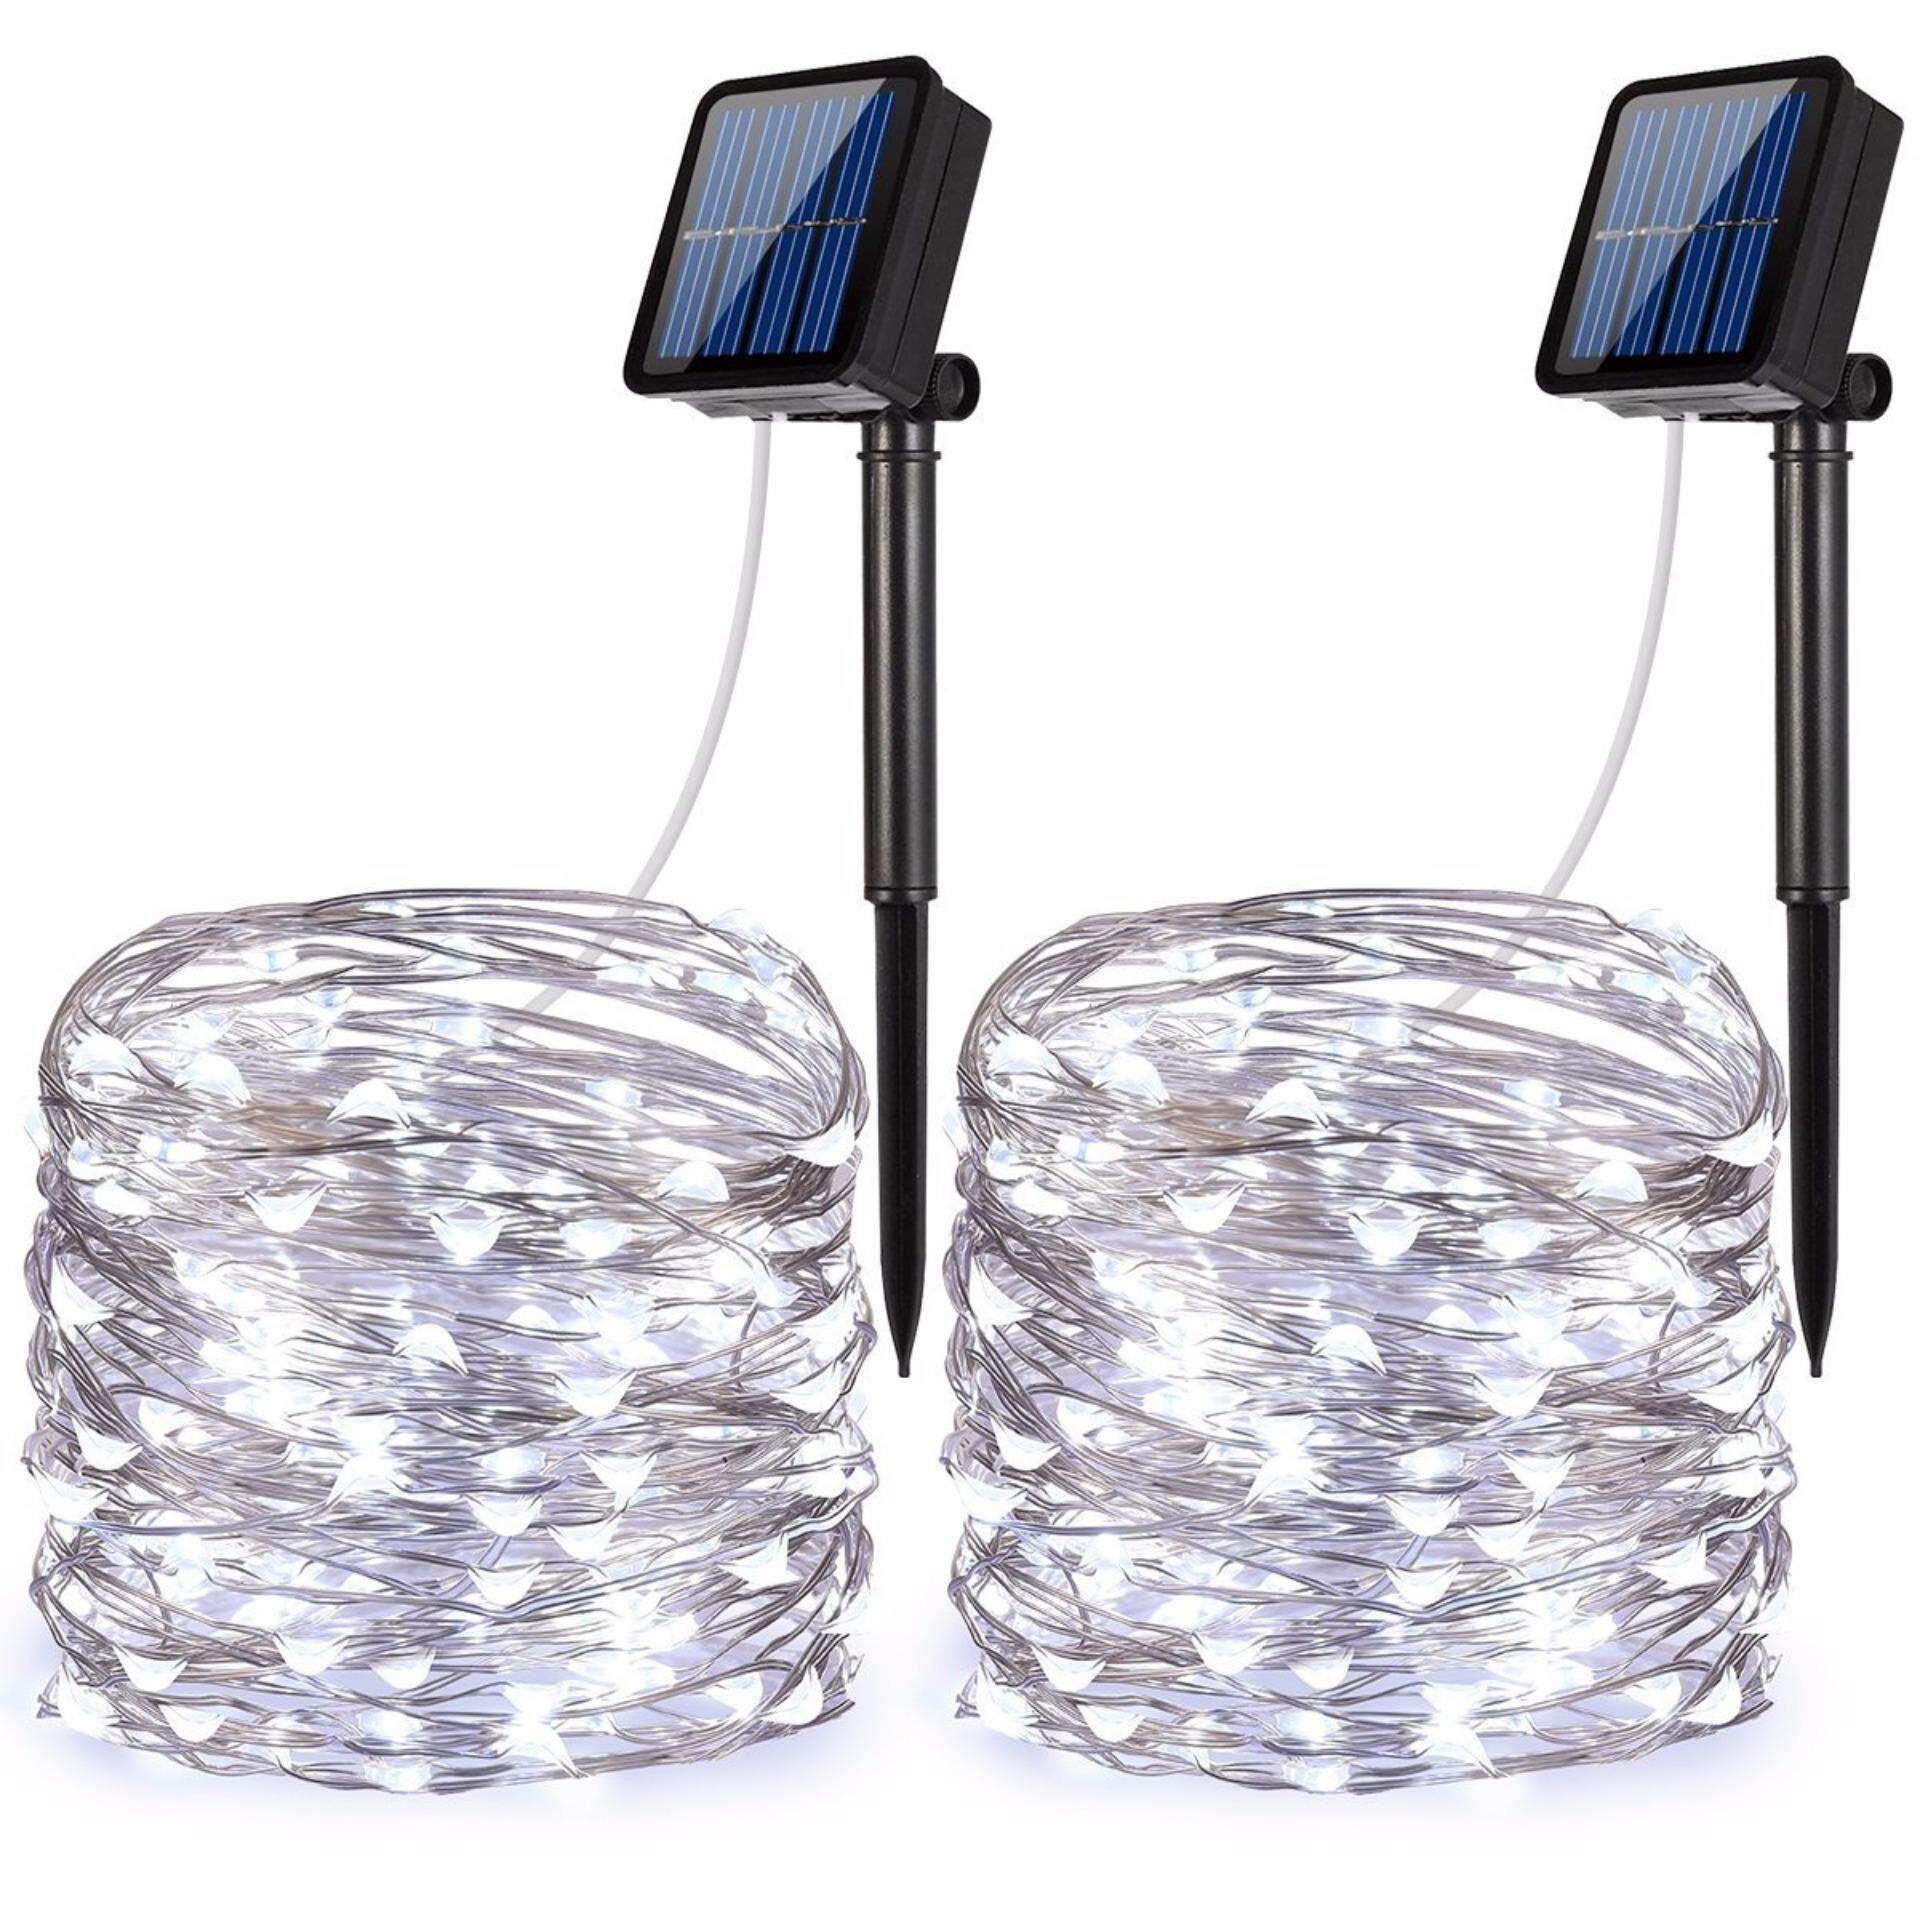 Outdoor Lighting for sale - Outdoor Lights prices, brands & review ...